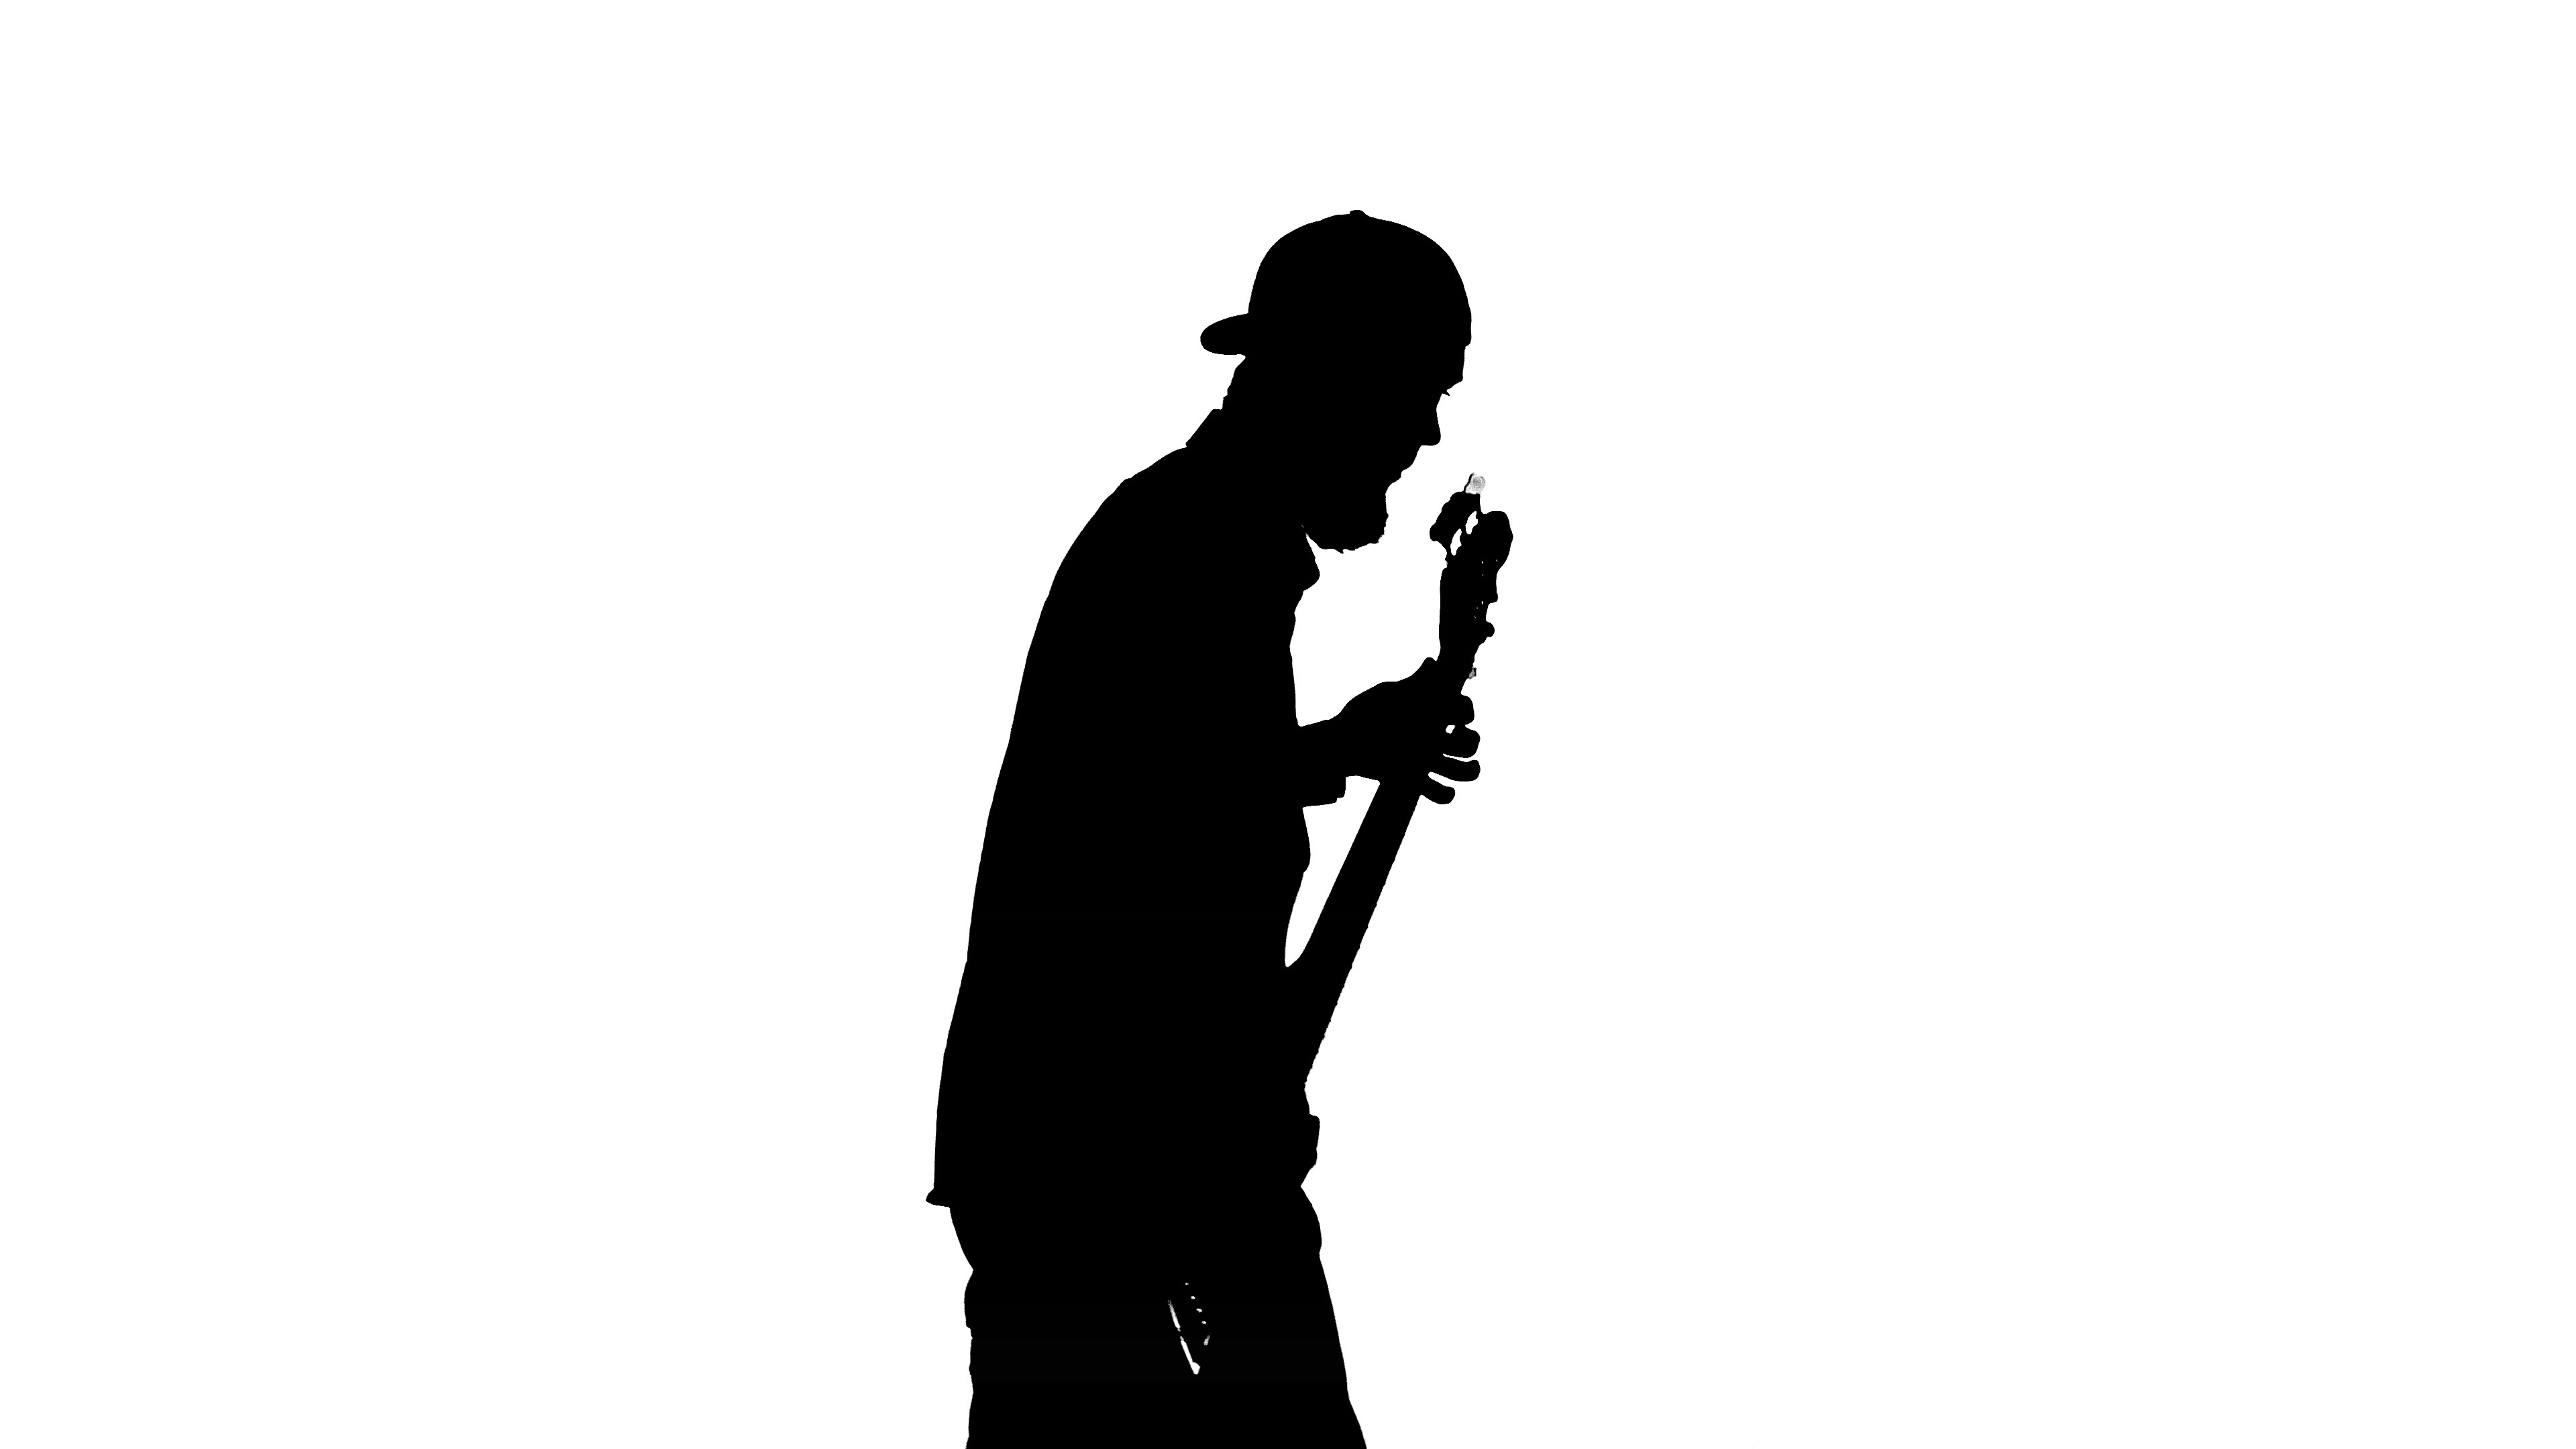 3840x2160 Silhouette Of Musician With Bass Guitar ~ Footage